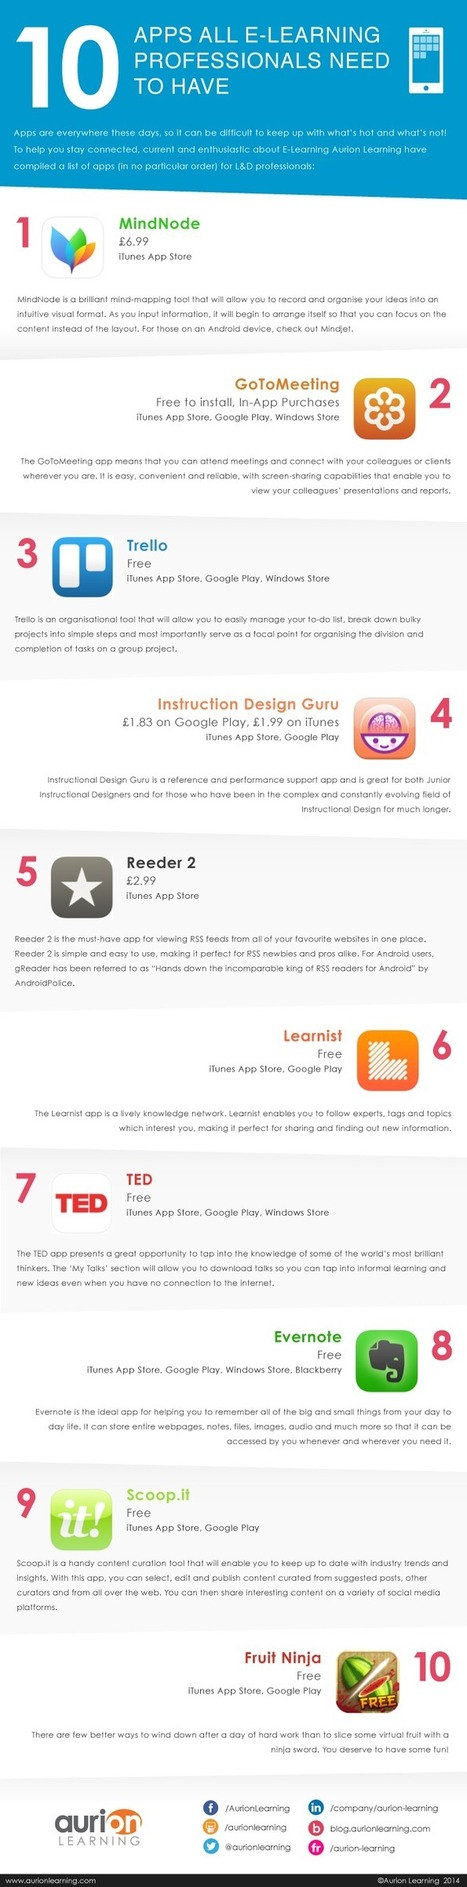 10 Handy Apps for eLearning Professionals Infographic | Noticias, Recursos y Contenidos sobre Aprendizaje | Scoop.it